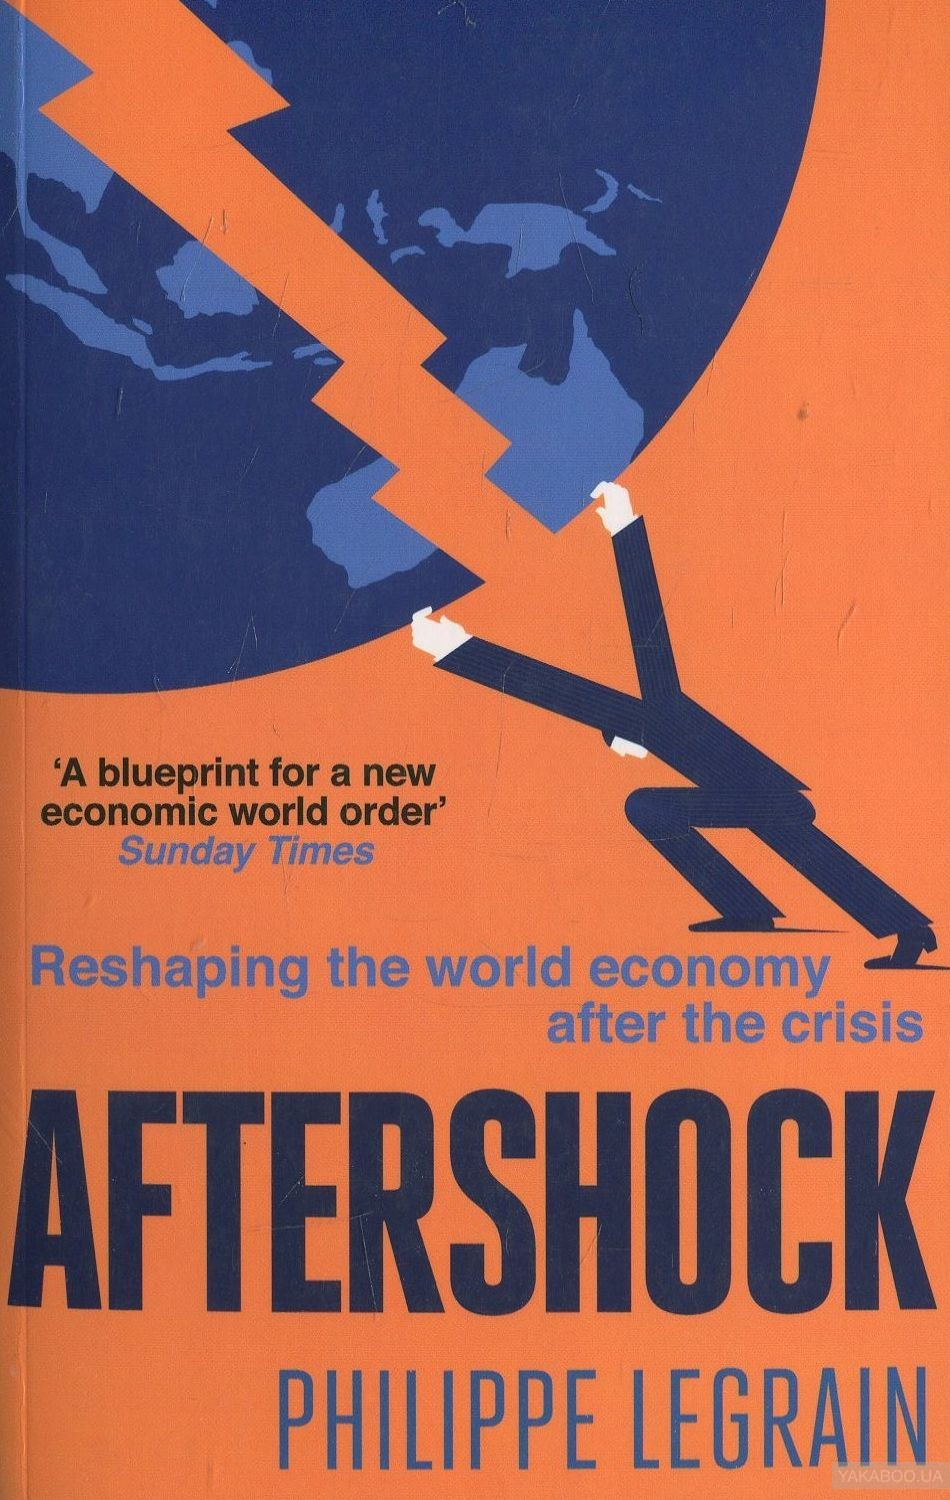 Aftershock: Reshaping the World Economy after Crisis